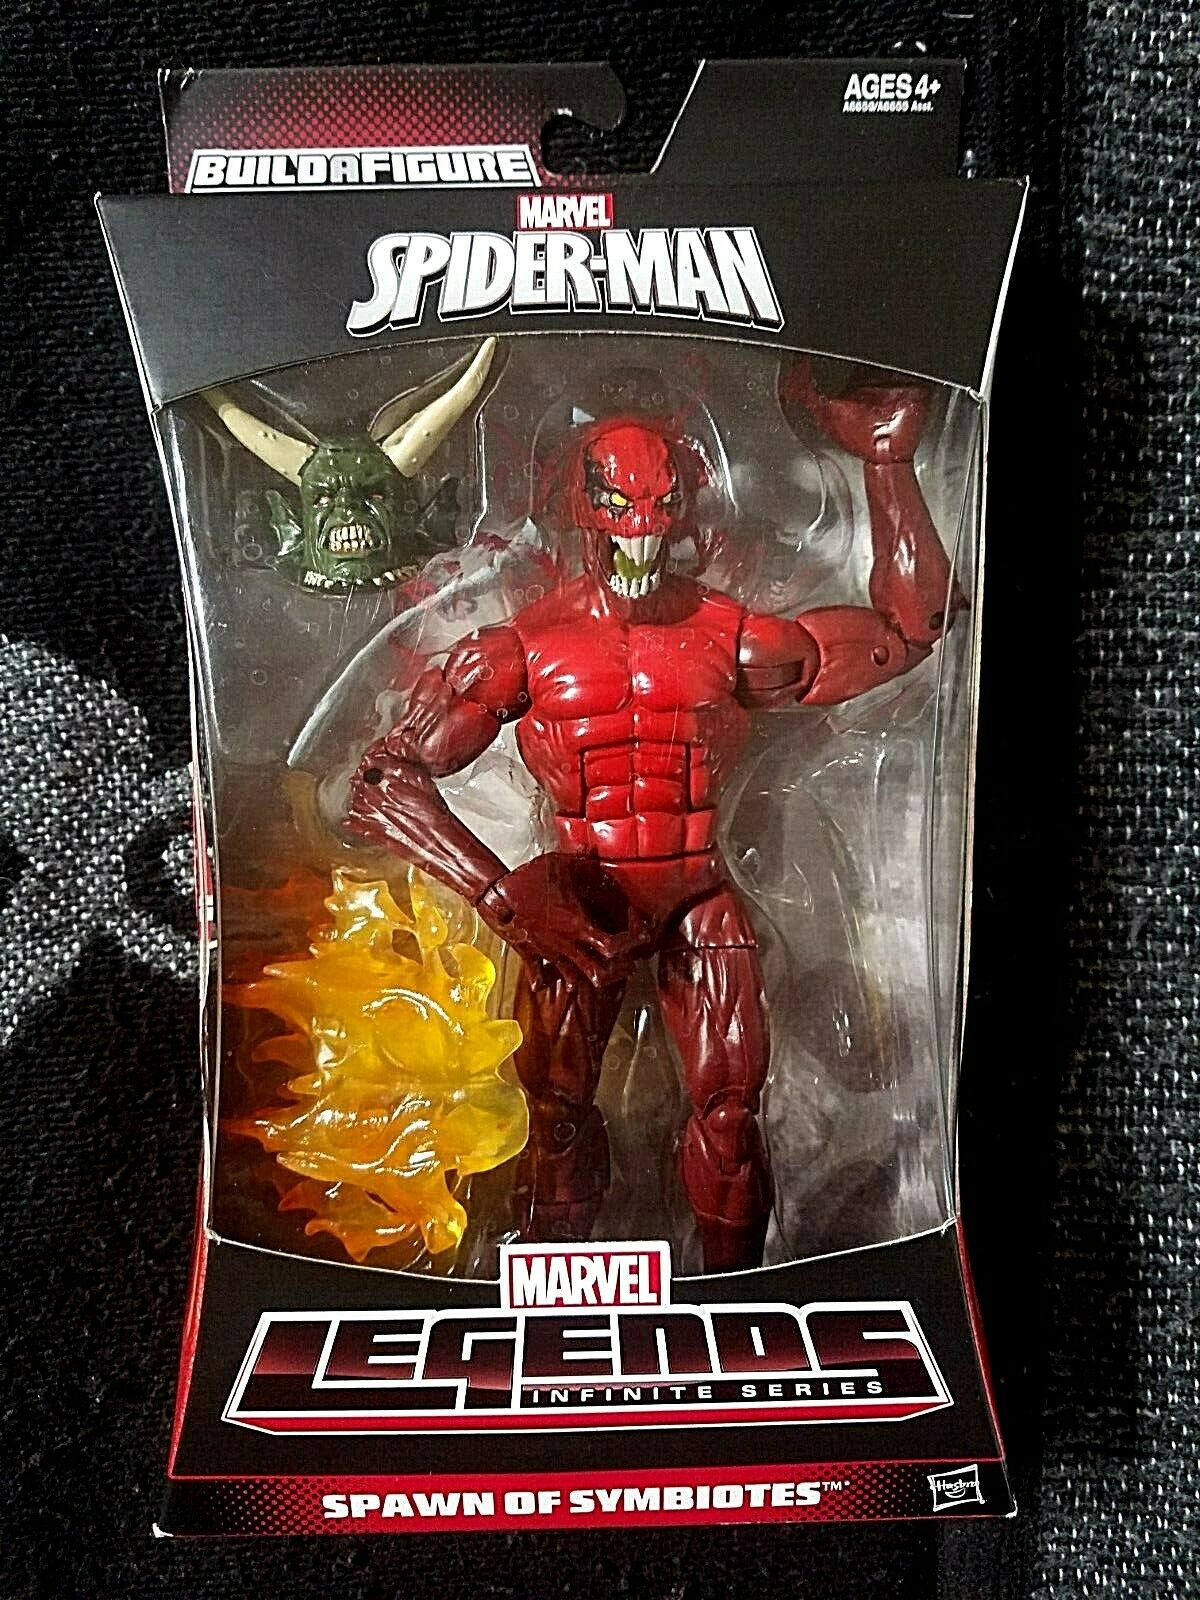 Marvel Legends Infinite Series Series Series Spider-uomo Spawn of Symbiotes TOXIN bbf0e4